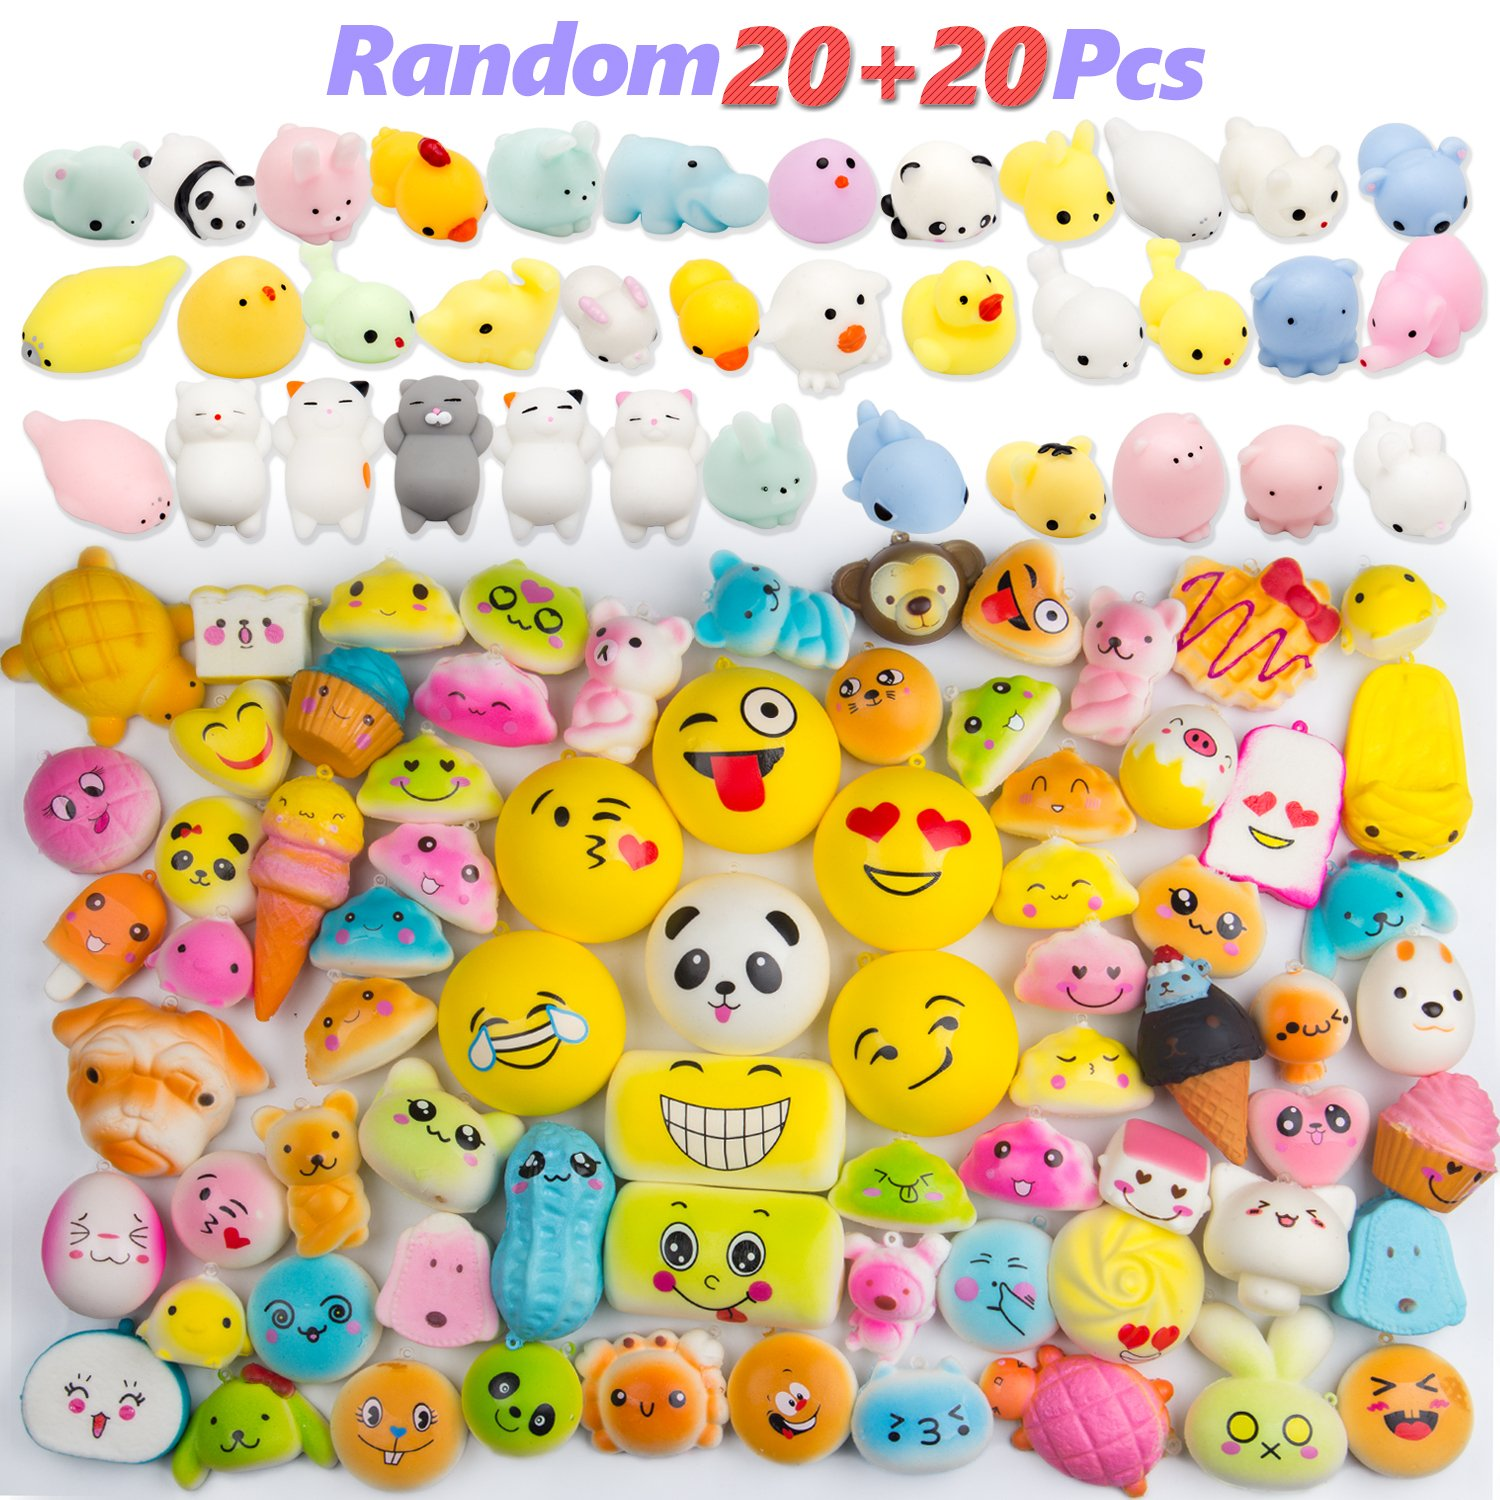 WATINC 40pcs Kawaii Cream Scented Slow Rising Squishy Toys, Including Random 20 Pcs Animals,Emoji Smile Face Squishies, Random 20 Pcs Cute Animal Mochi Mini Soft Squishies